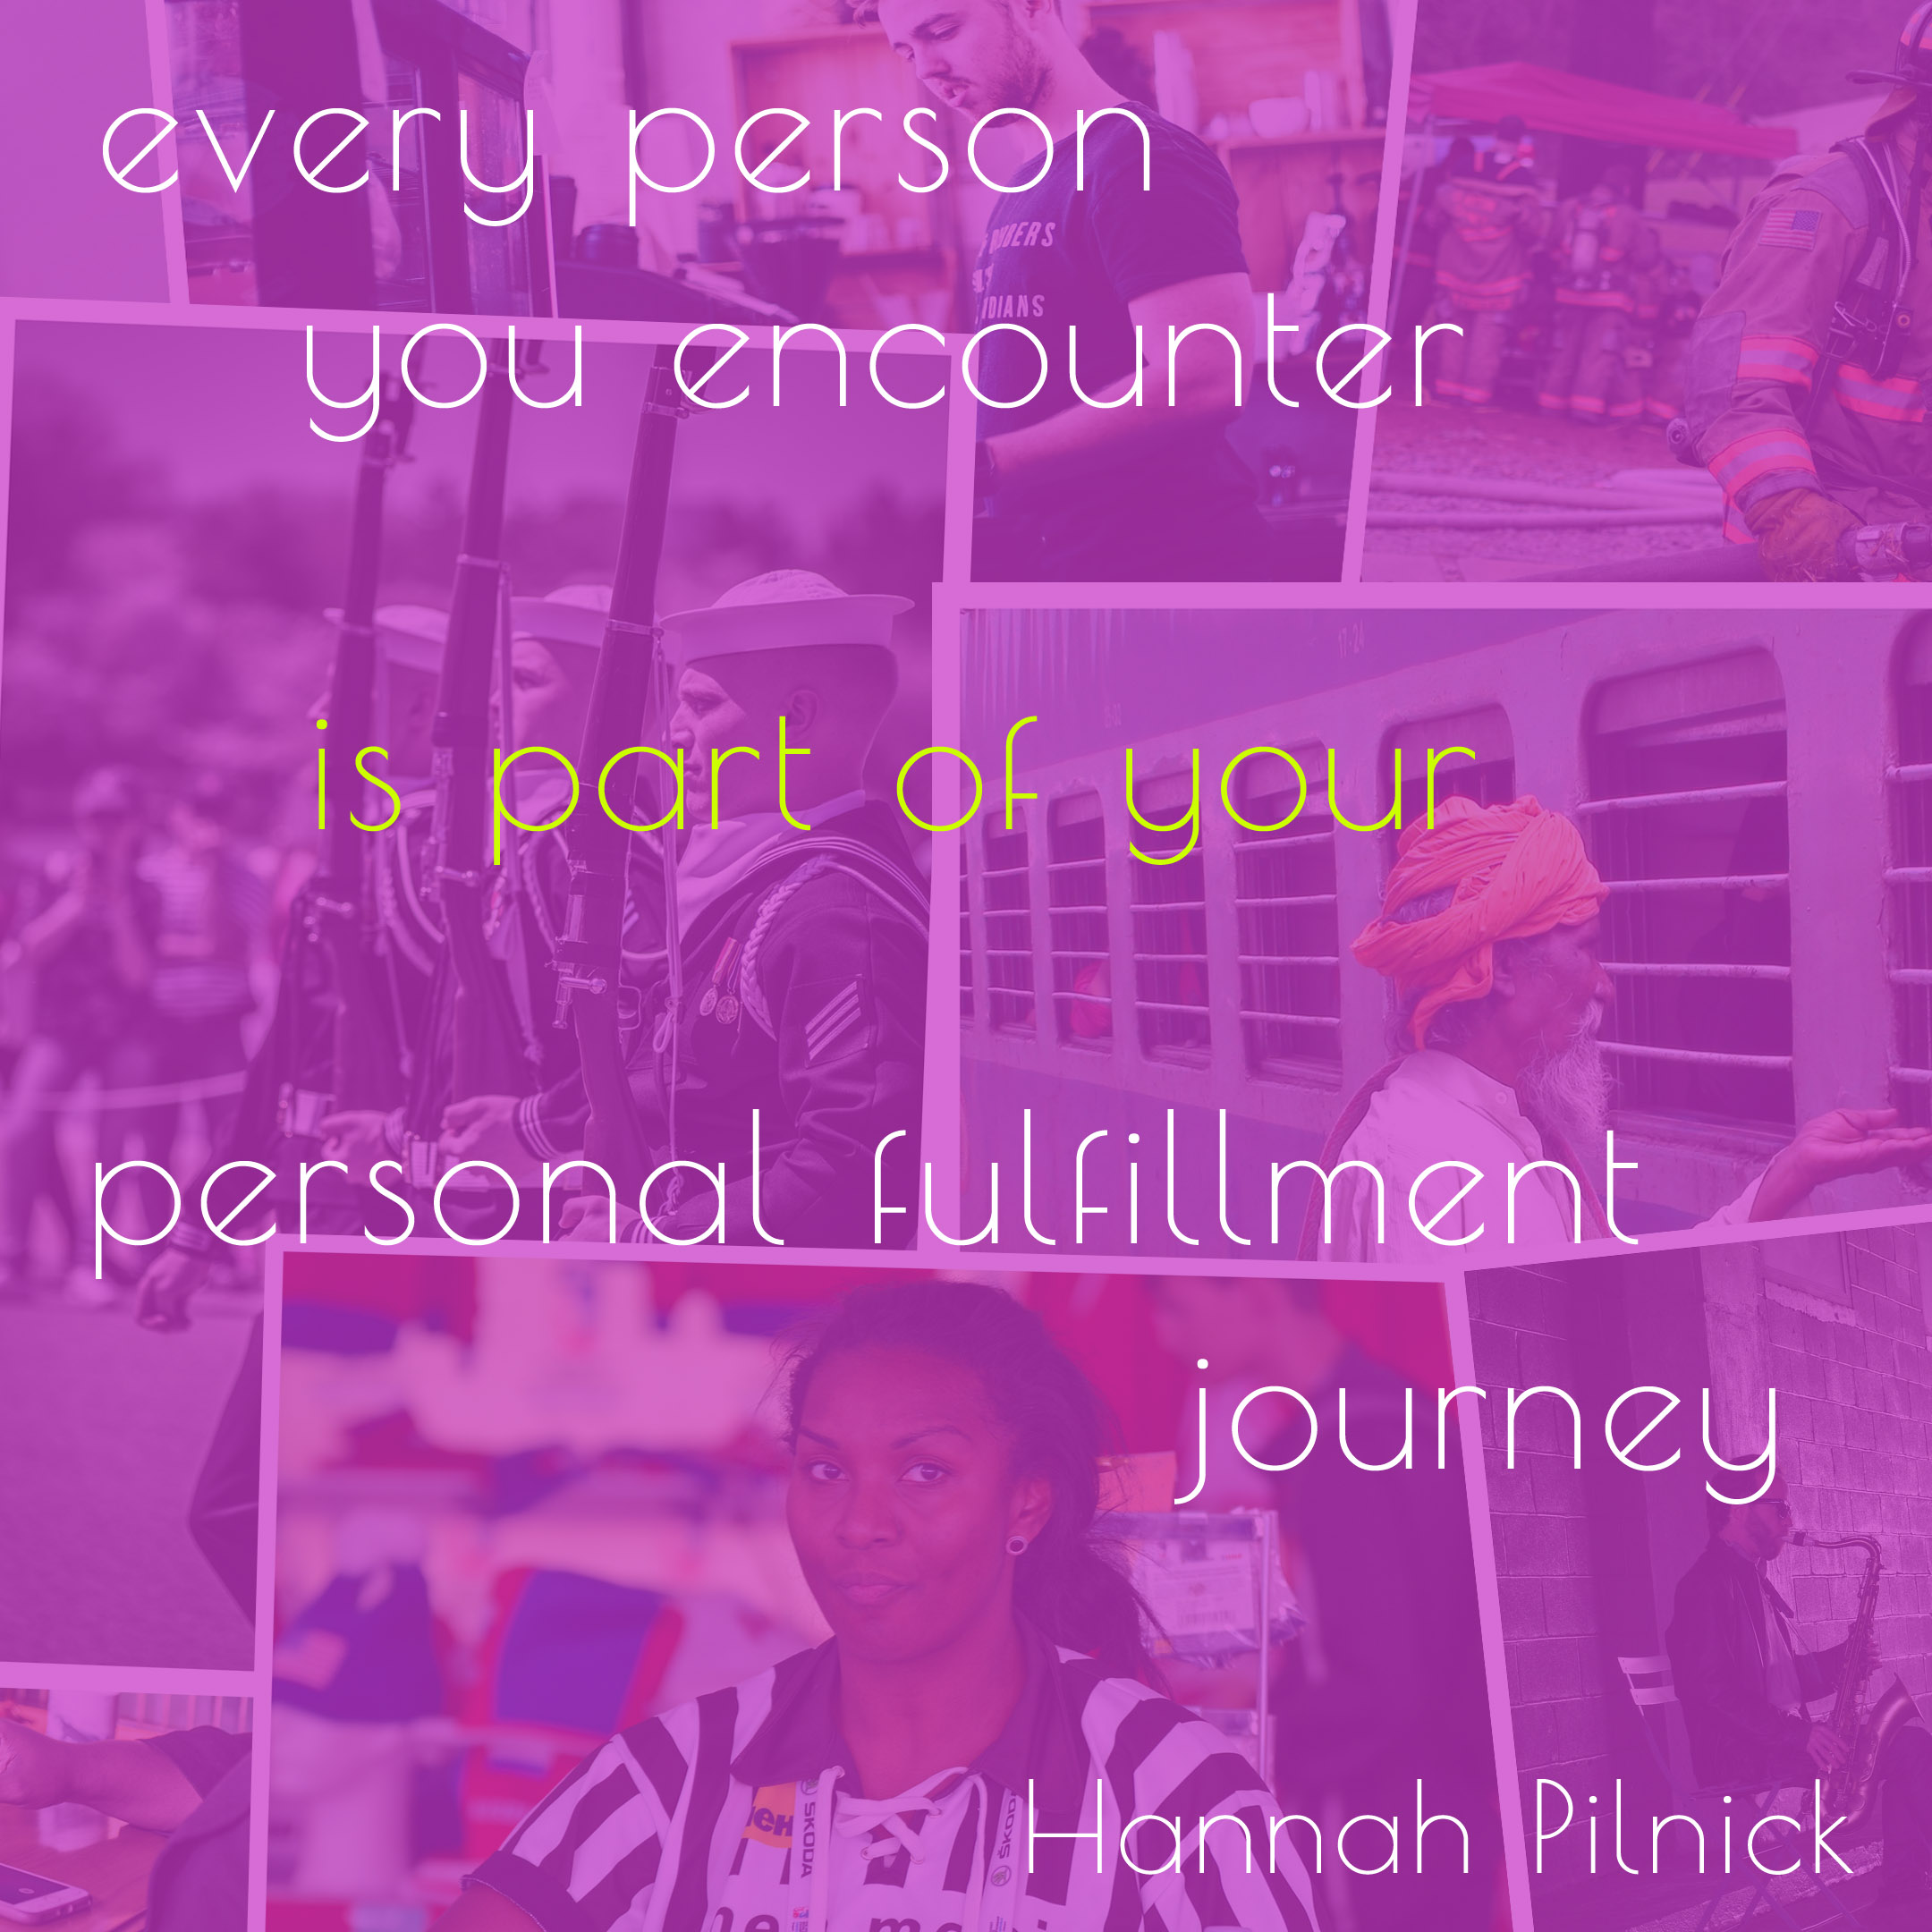 We are part of your personal journey